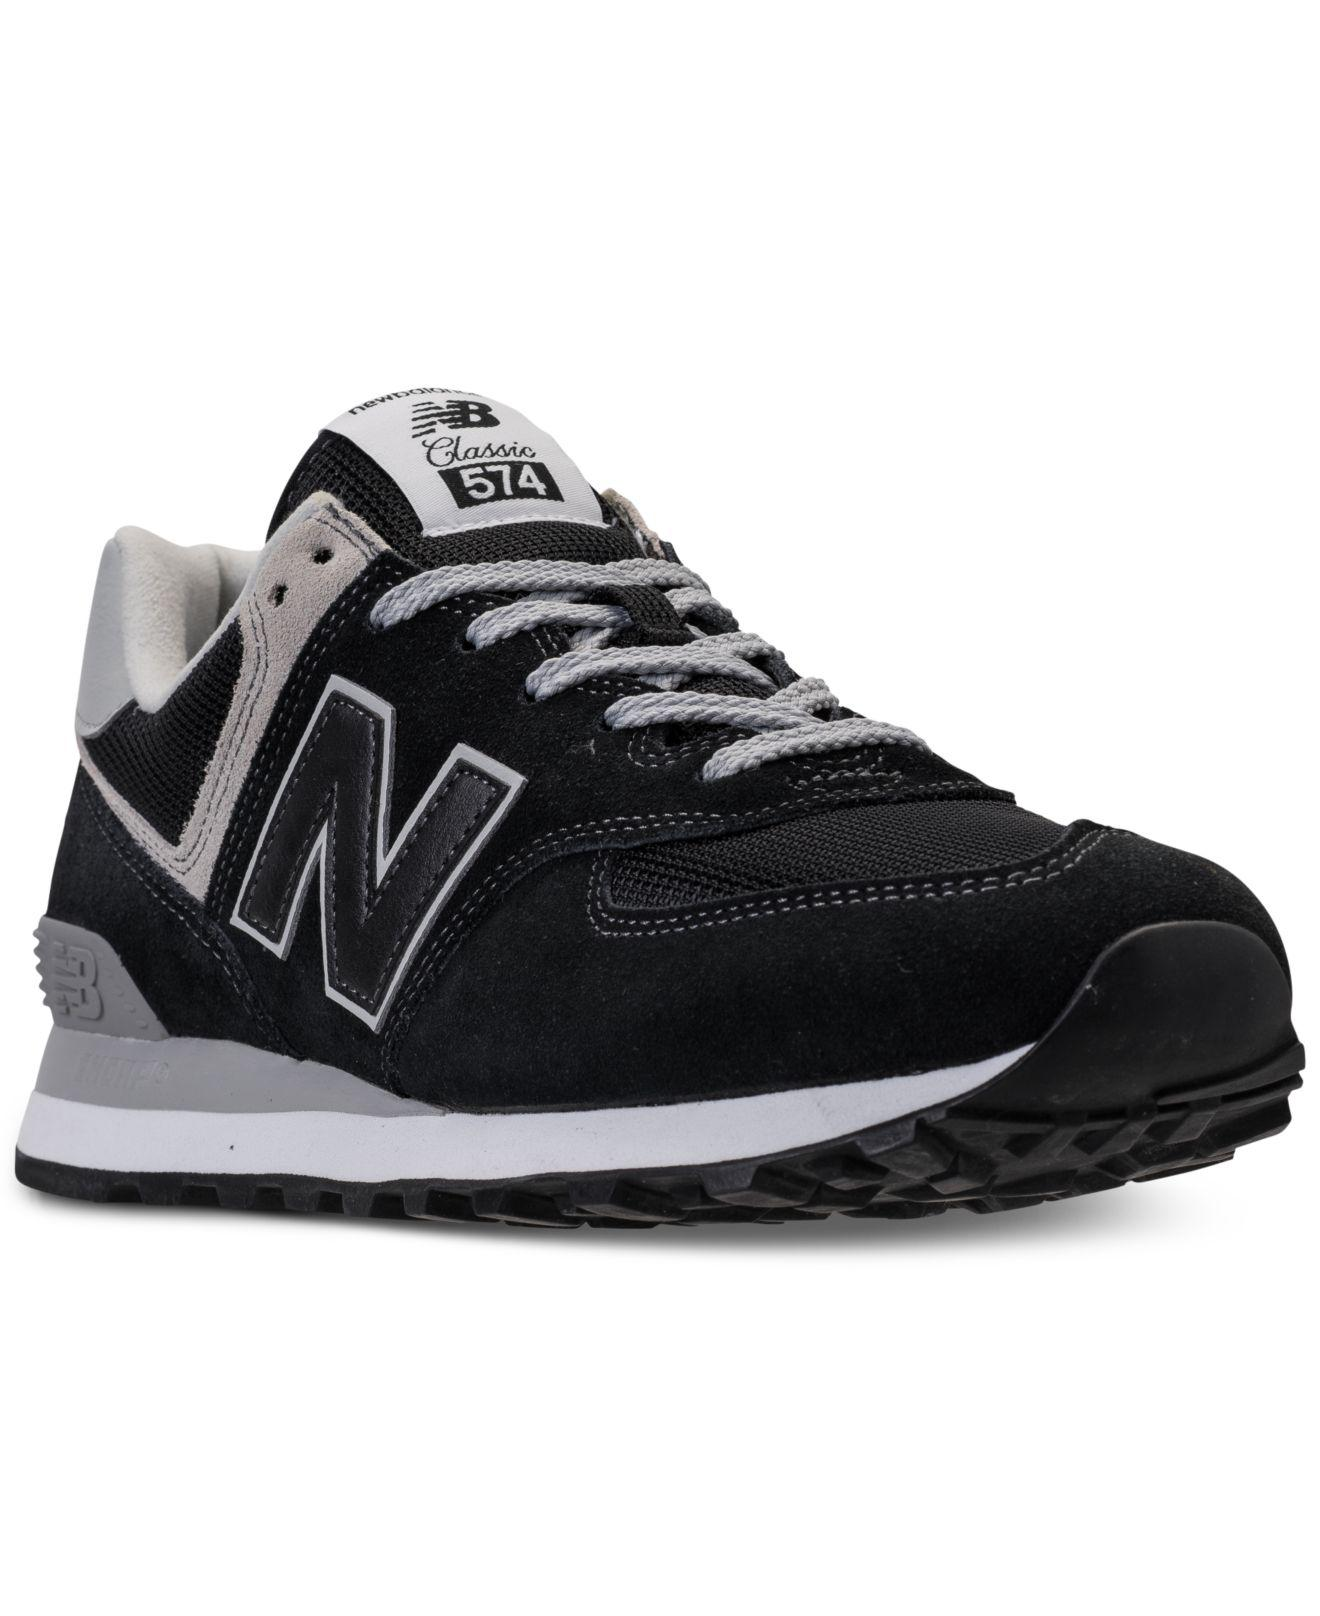 0844c0d34b Lyst - New Balance 574 Casual Sneakers From Finish Line in Black for Men